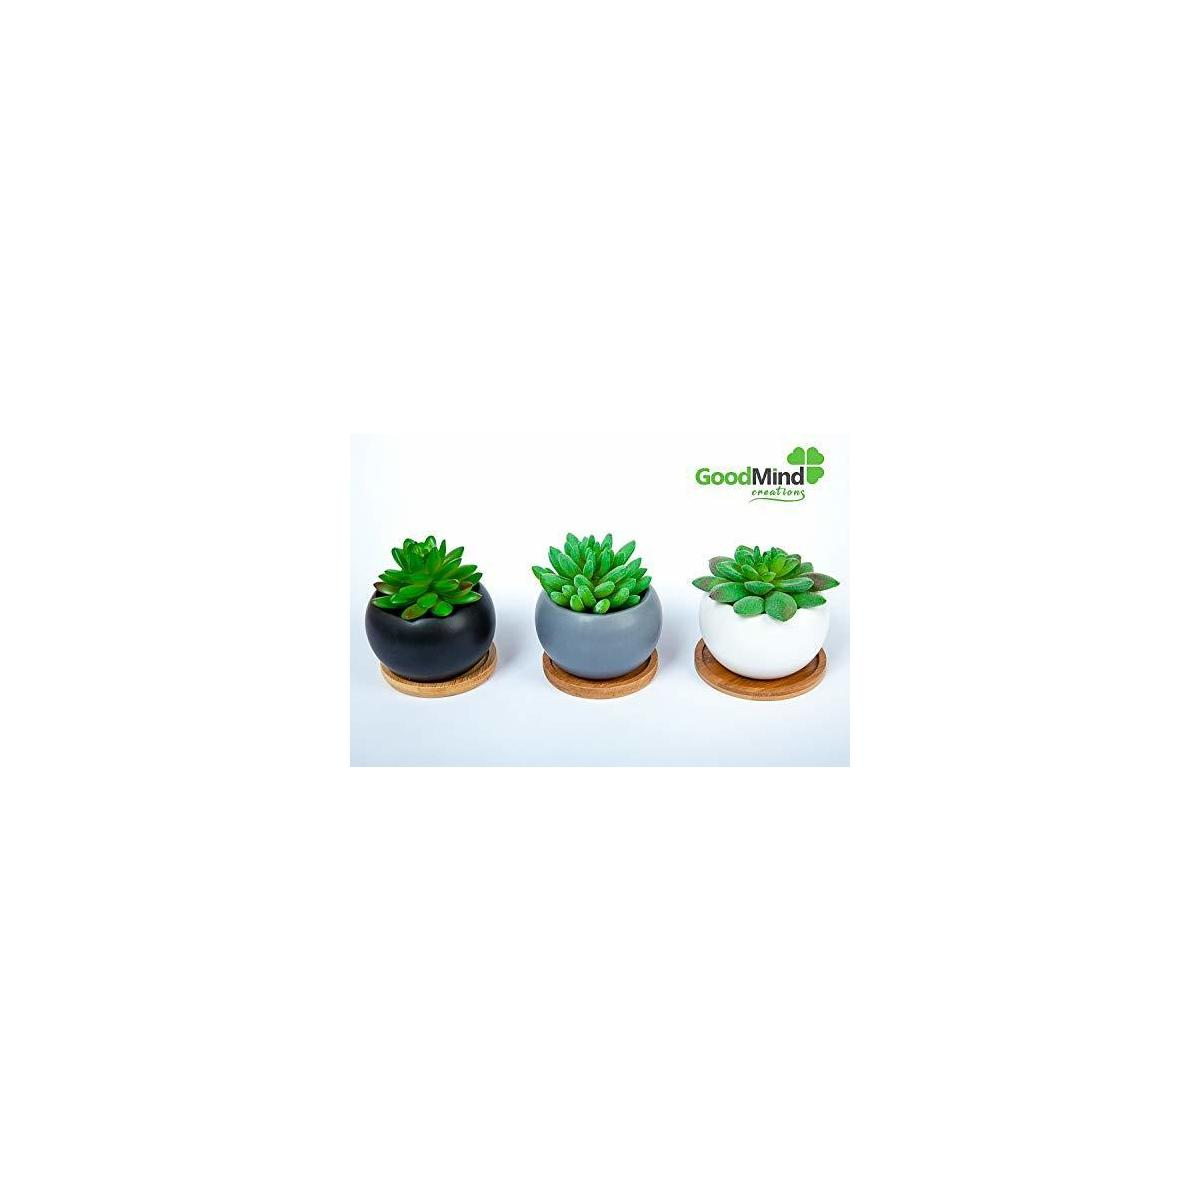 Succulent Cactus Plant Mini Pots with Bamboo Tray – Set of 3 Indoor Outdoor Flower, Herbs Cute Ceramic Planters for Home, Office Decoration. Mather's Day House Decor Gift for Real or Artificial Plants